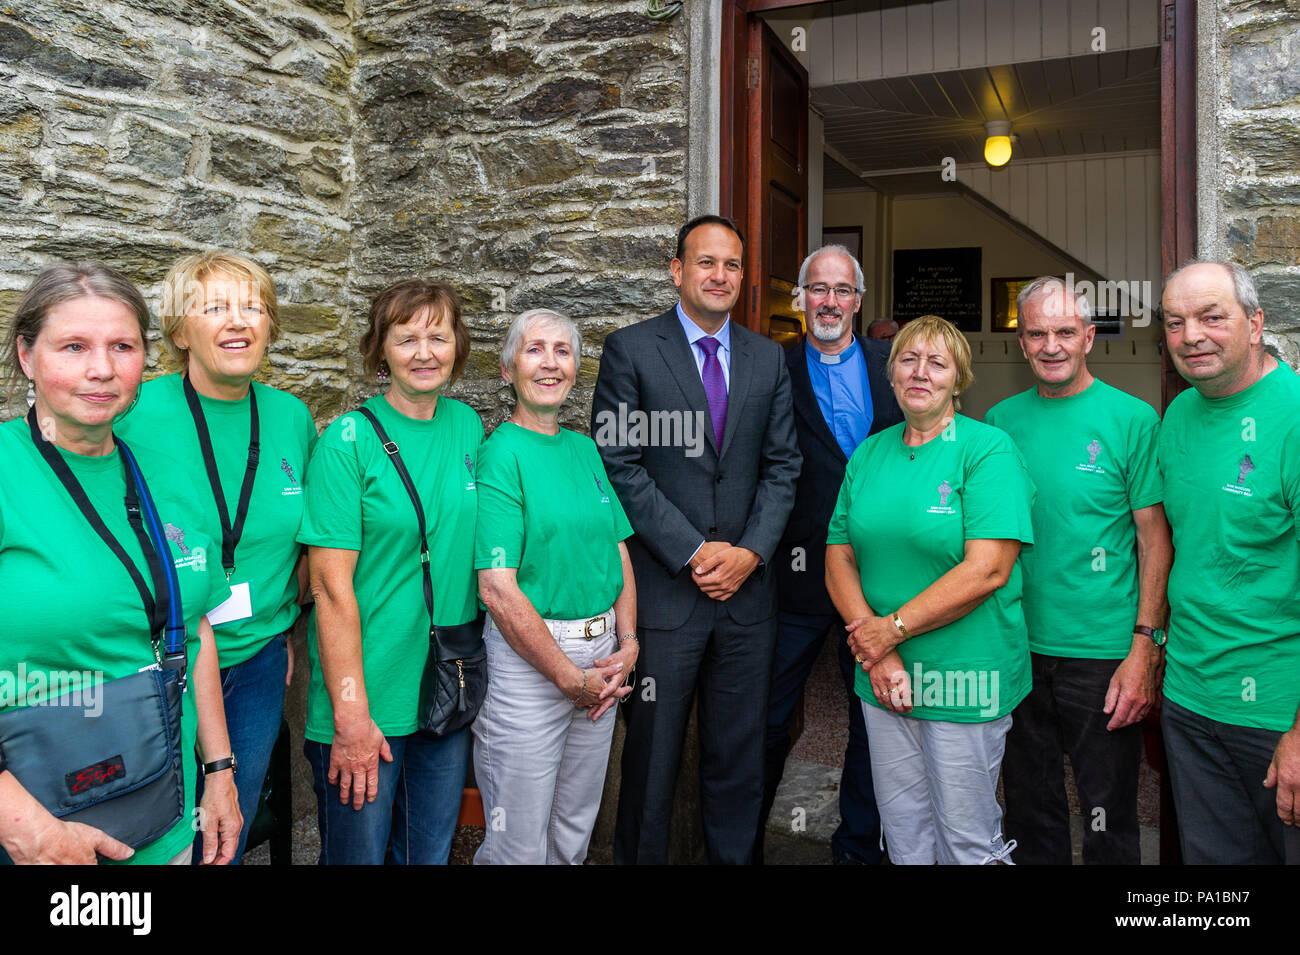 Dunmanway, West Cork, Ireland. 20th July, 2018. Taoiseach Leo Varadkar visited Dunmanway today to see the birthplace and final resting place of Sam Maguire. He also visited the Sam Maguire Bells in St. Mary's Church. Rev Cliff Jeffers, Rector of Fanlobbus Union, and the Sam Maguire Community Bells Team posed for a picture with the Taoiseach. Credit: Andy Gibson/Alamy Live News. - Stock Image